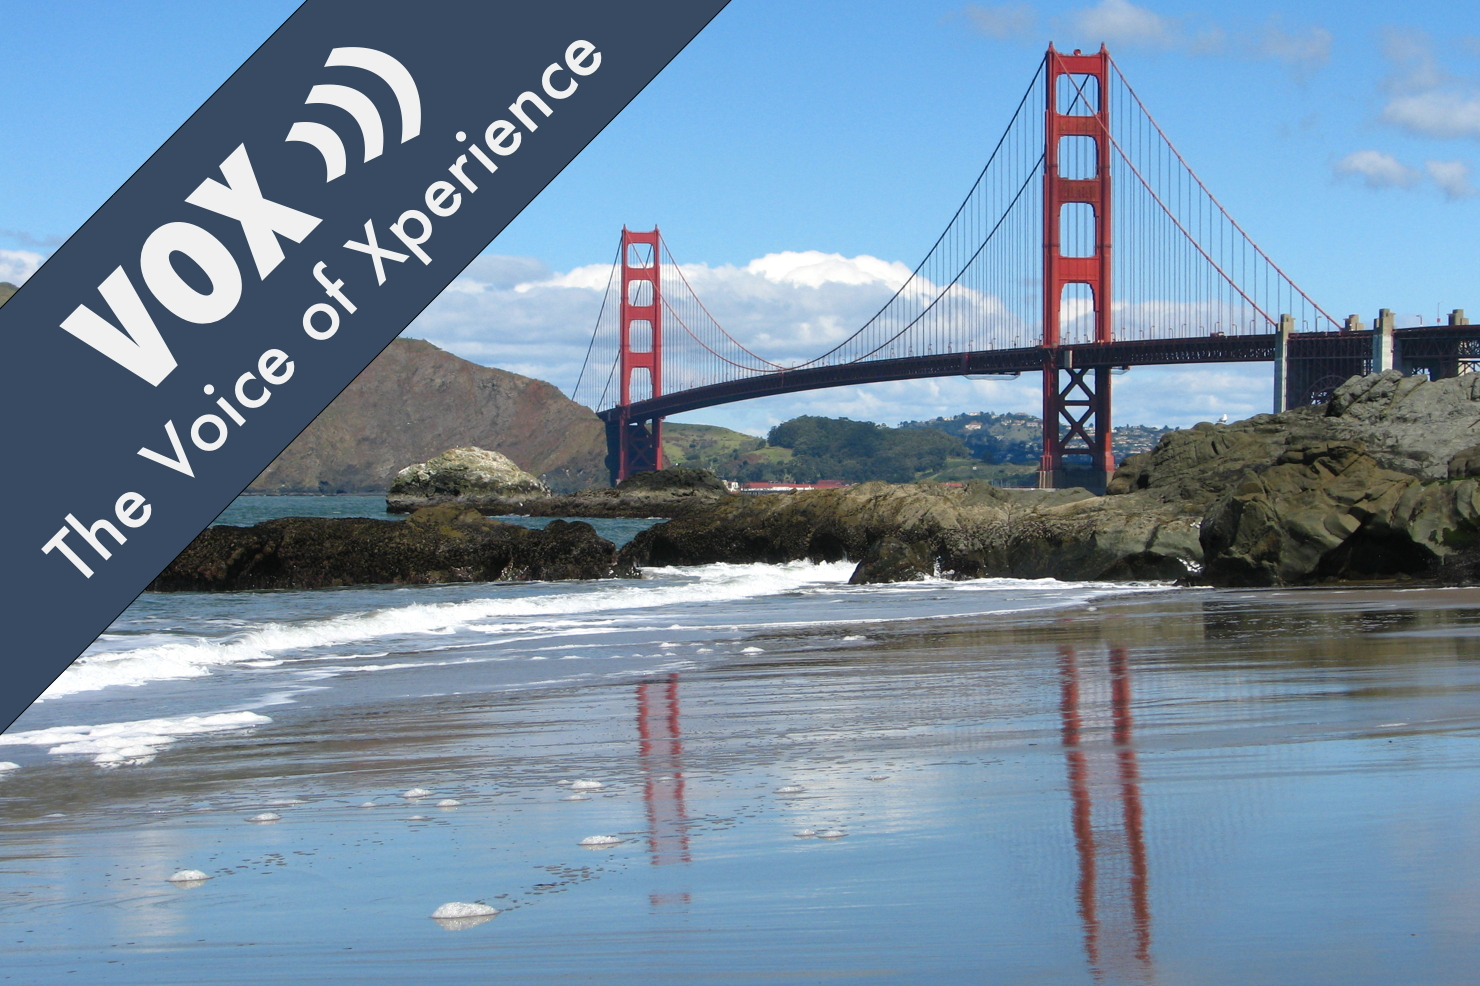 The Winds of the Future: 5 Ways San Francisco Stays Innovative. A VOX column by Wade Roush